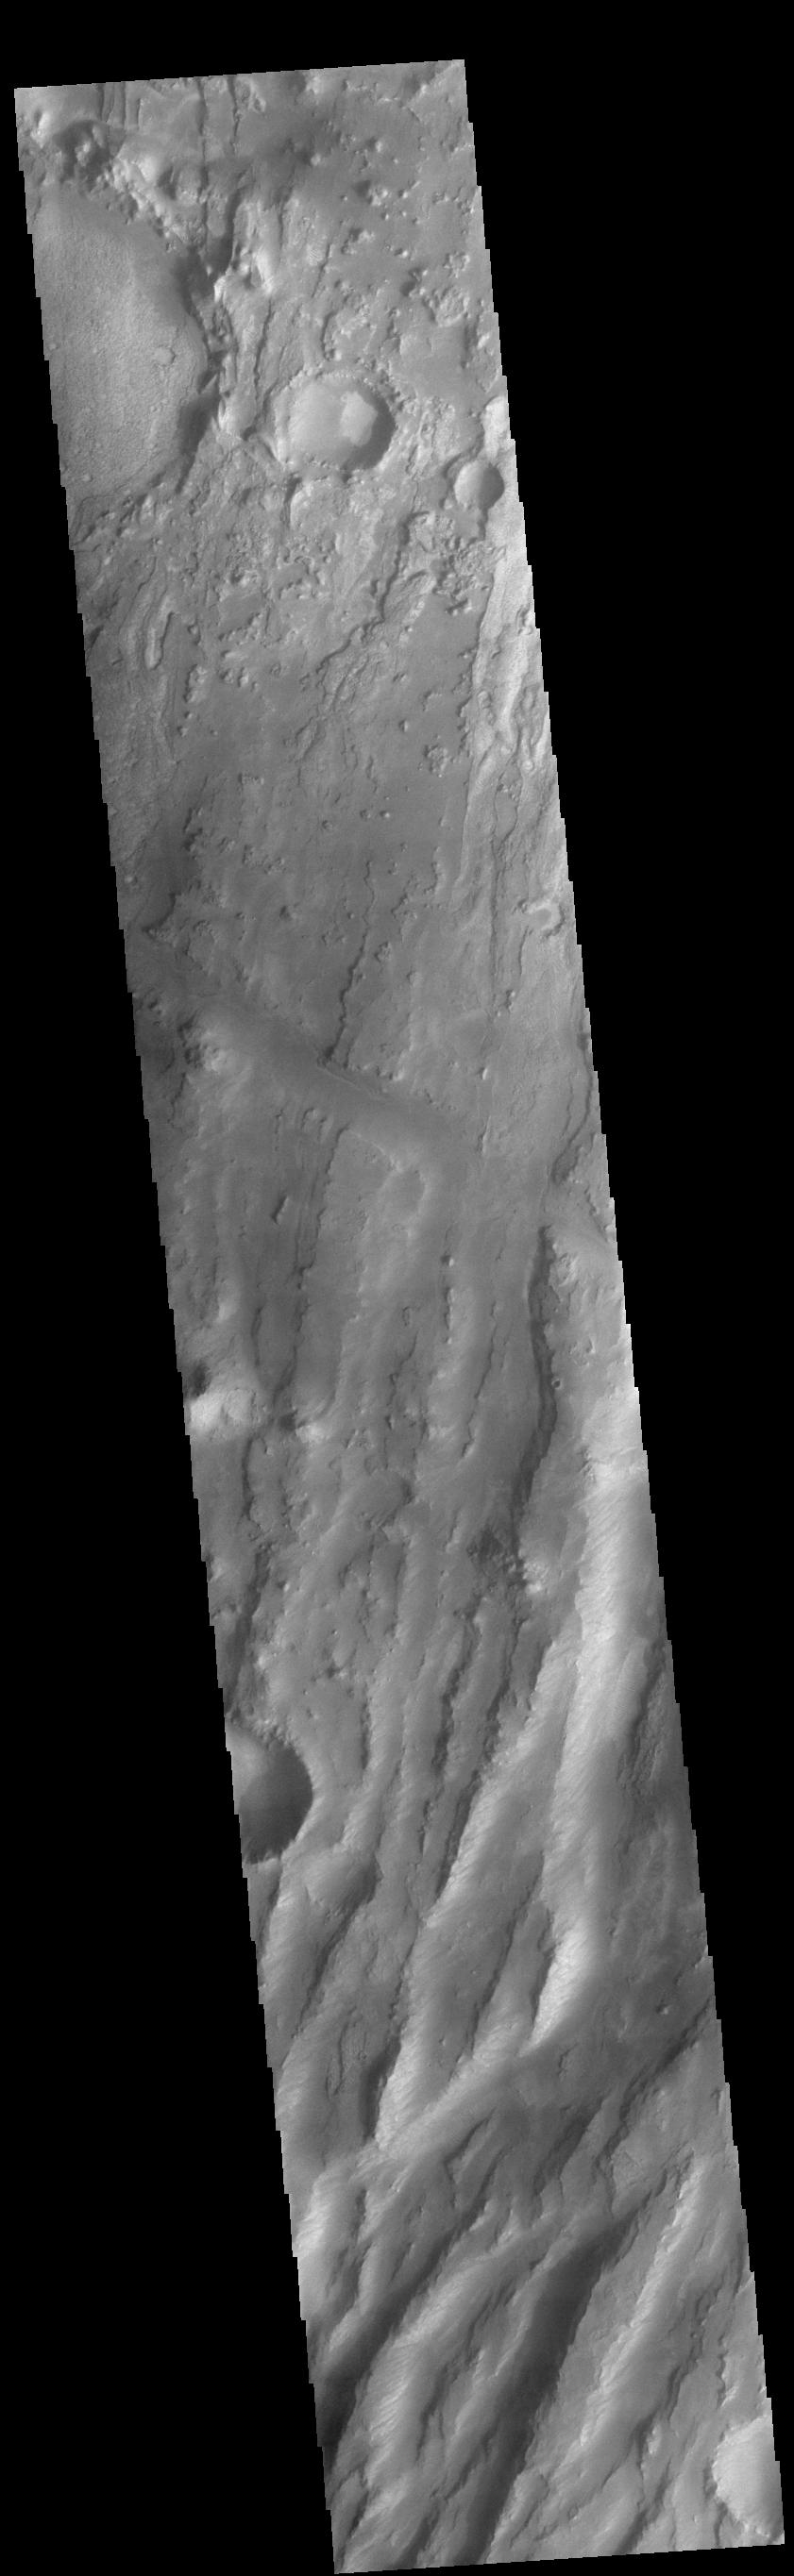 This image from NASAs Mars Odyssey shows part of Claritas Fossae. The linear features (fossae) are flaults.